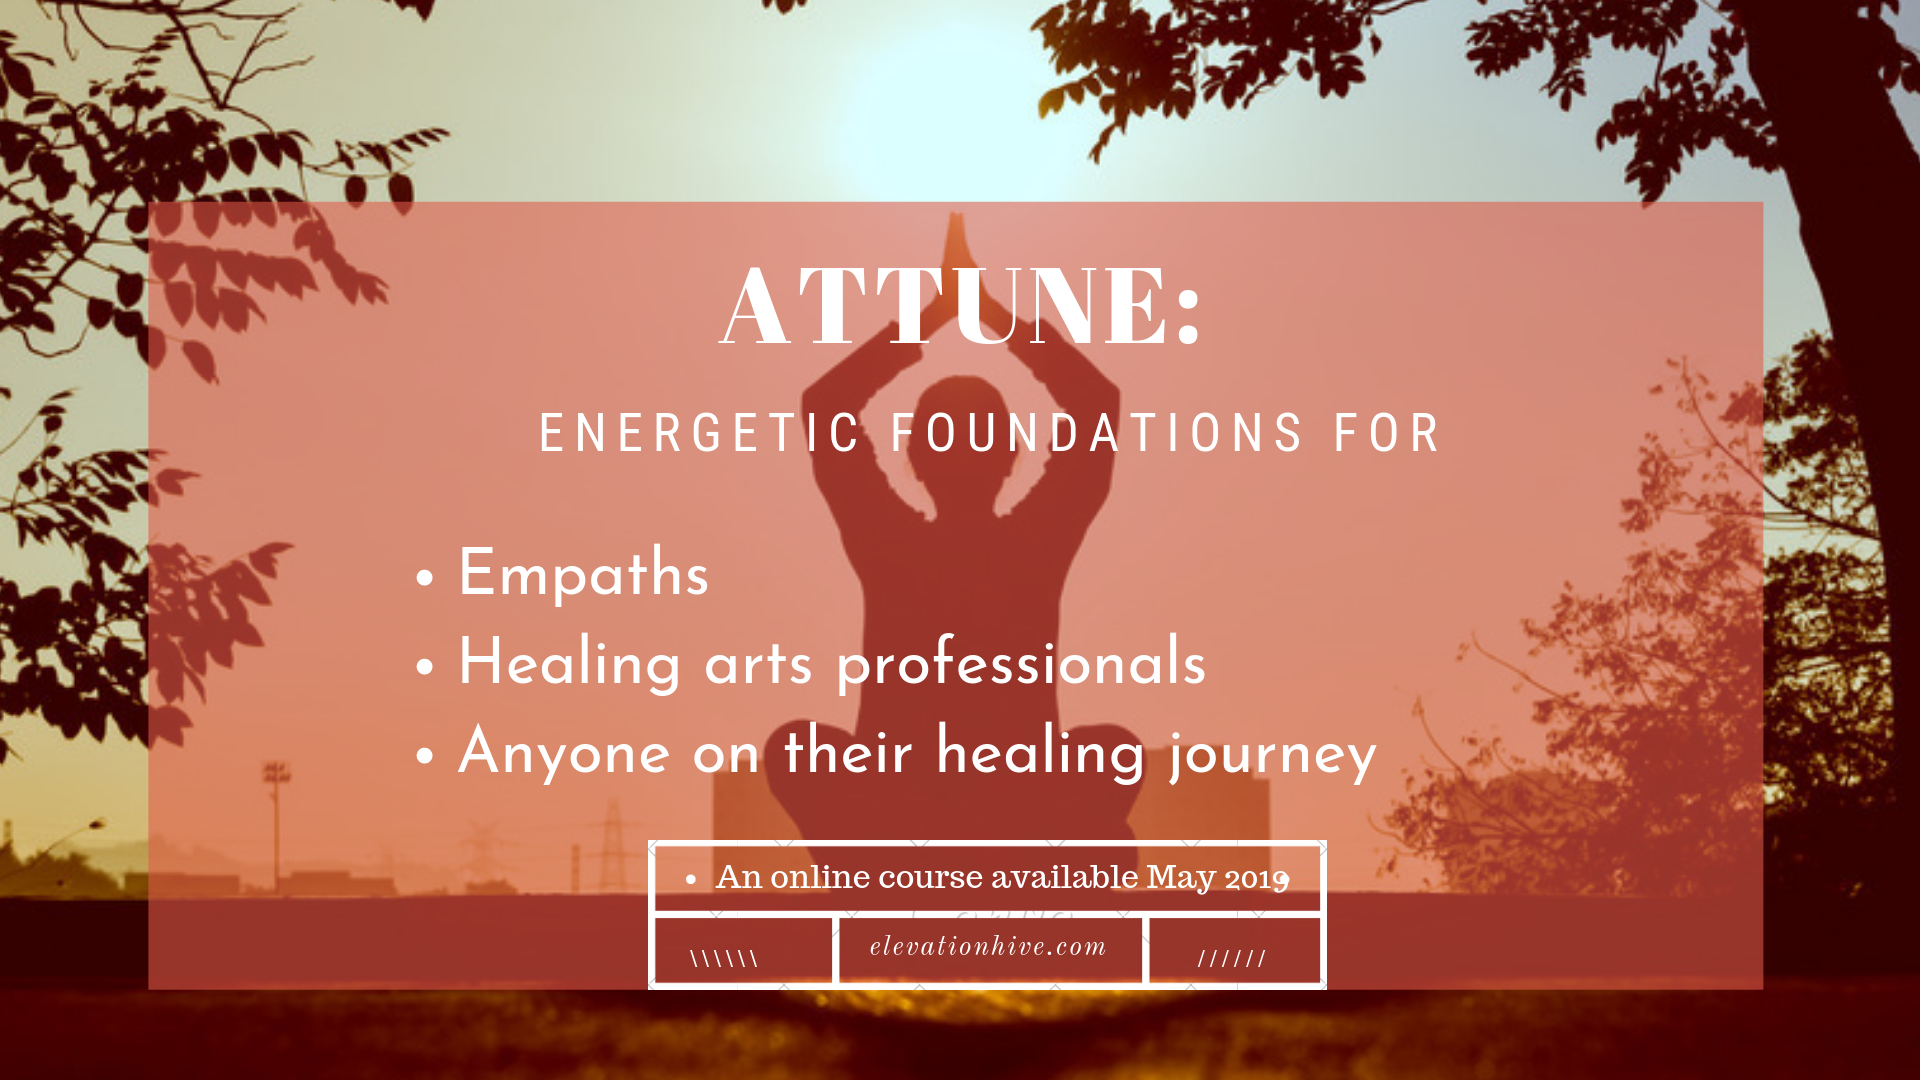 Attune: Energetic foundations - Location: Anywhere cozy (This is an online course coming in May 2019)